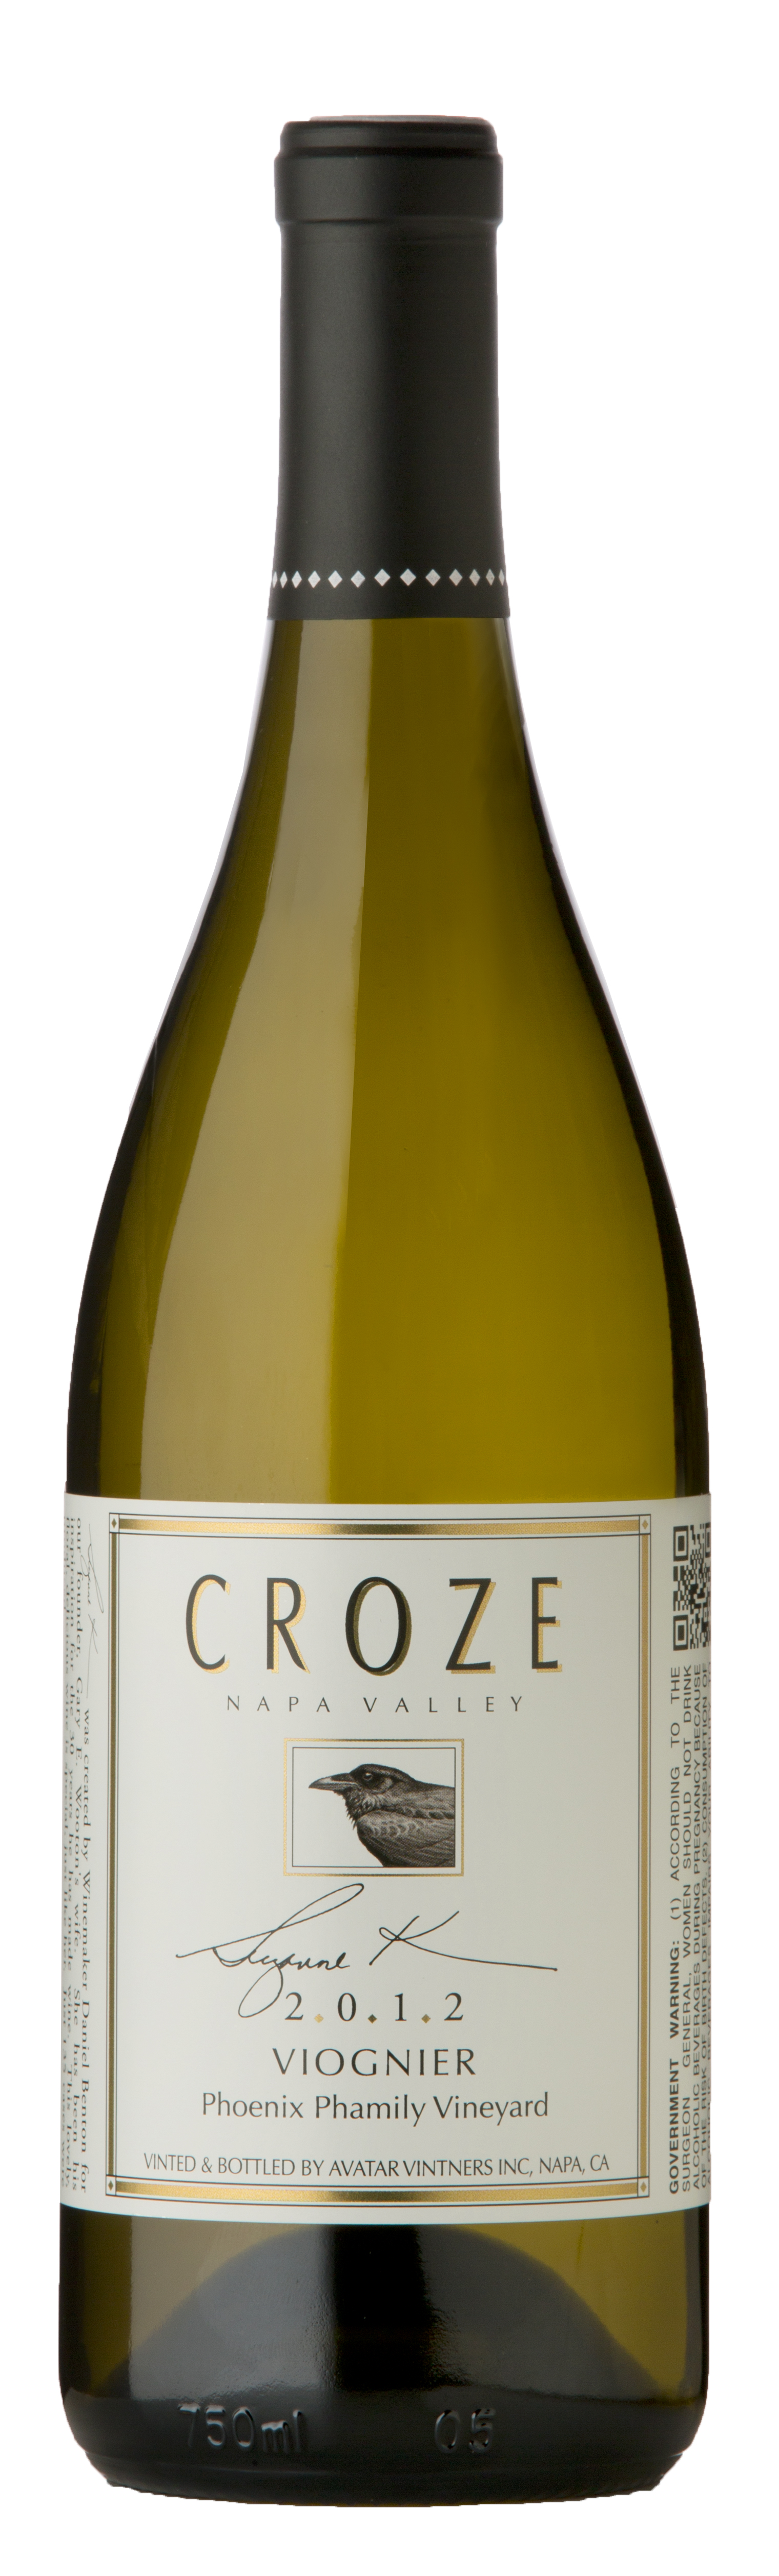 2015 Croze Viognier, Phoenix Phamily Ranch Product Image